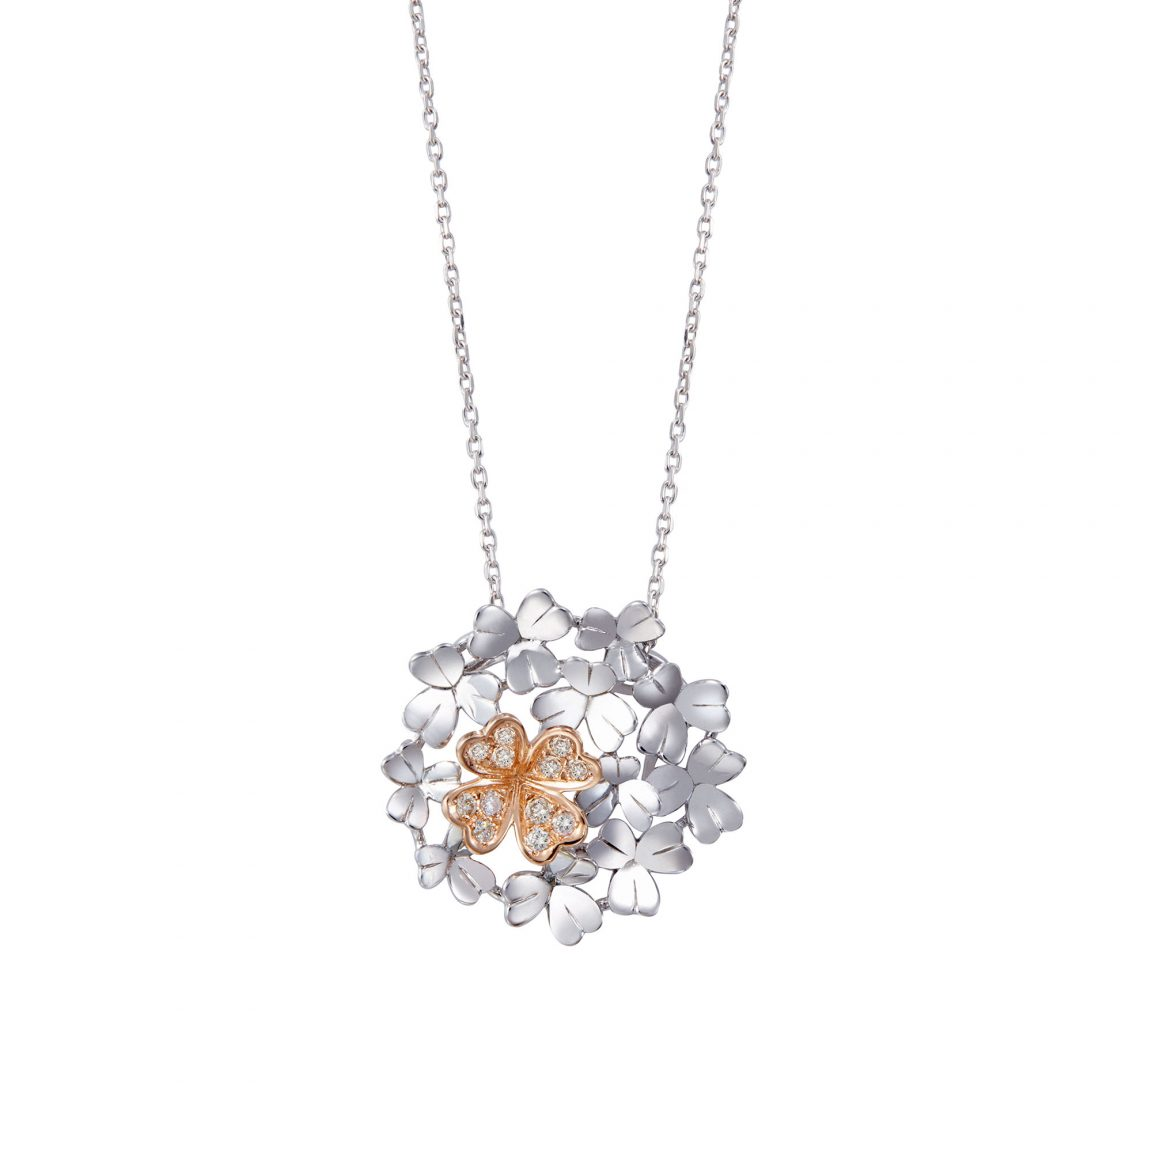 Soleluna AGLAIA Lucky Clover Diamond Necklace